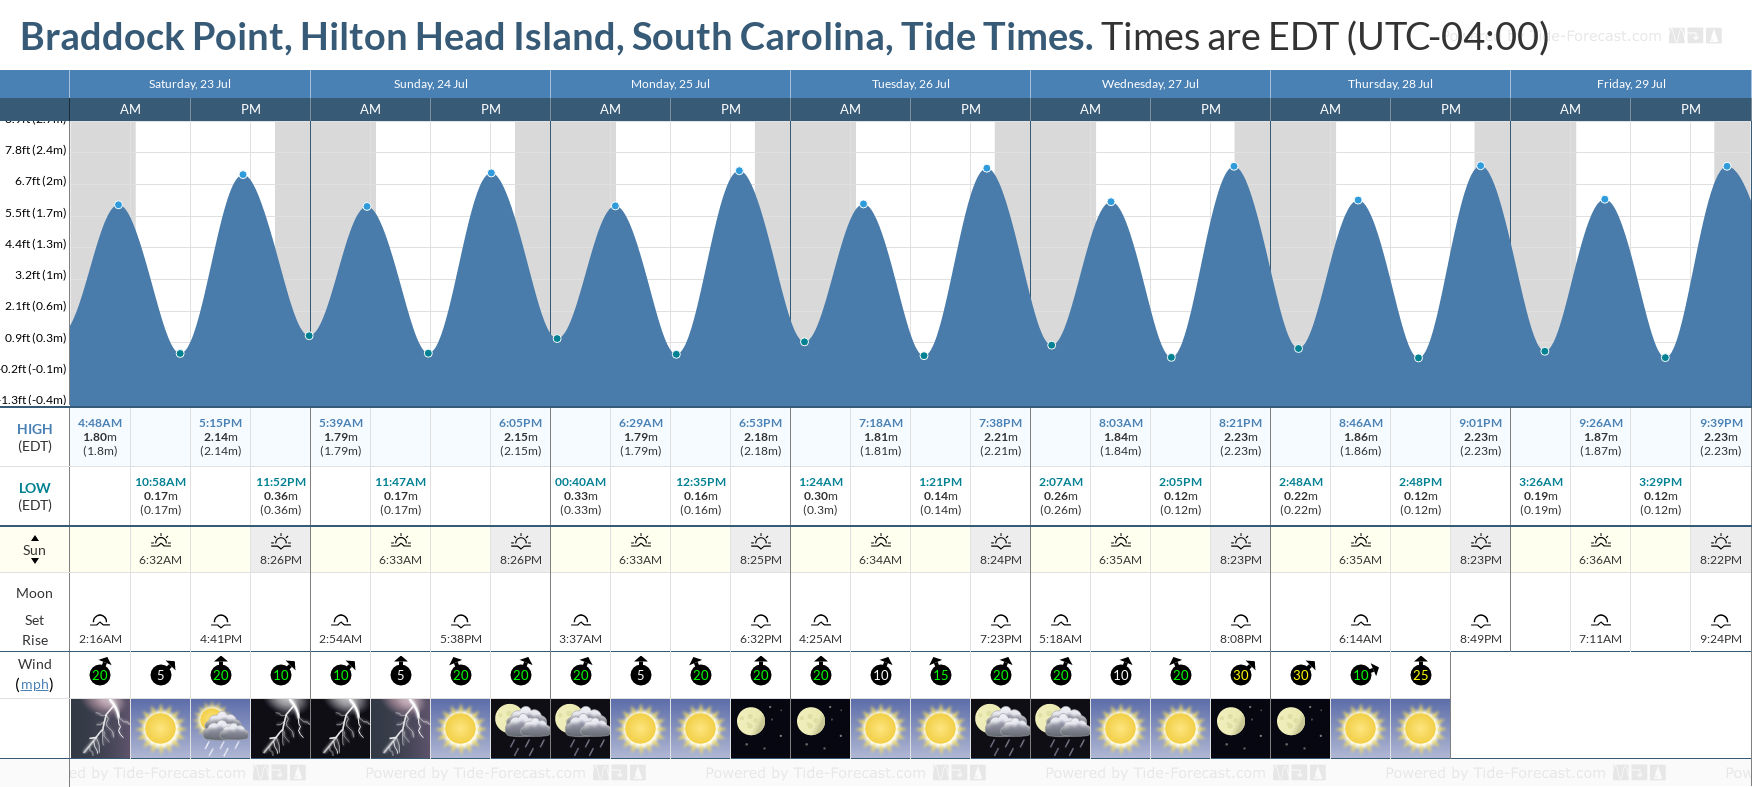 Braddock Point, Hilton Head Island, South Carolina Tide Chart including high and low tide tide times for the next 7 days